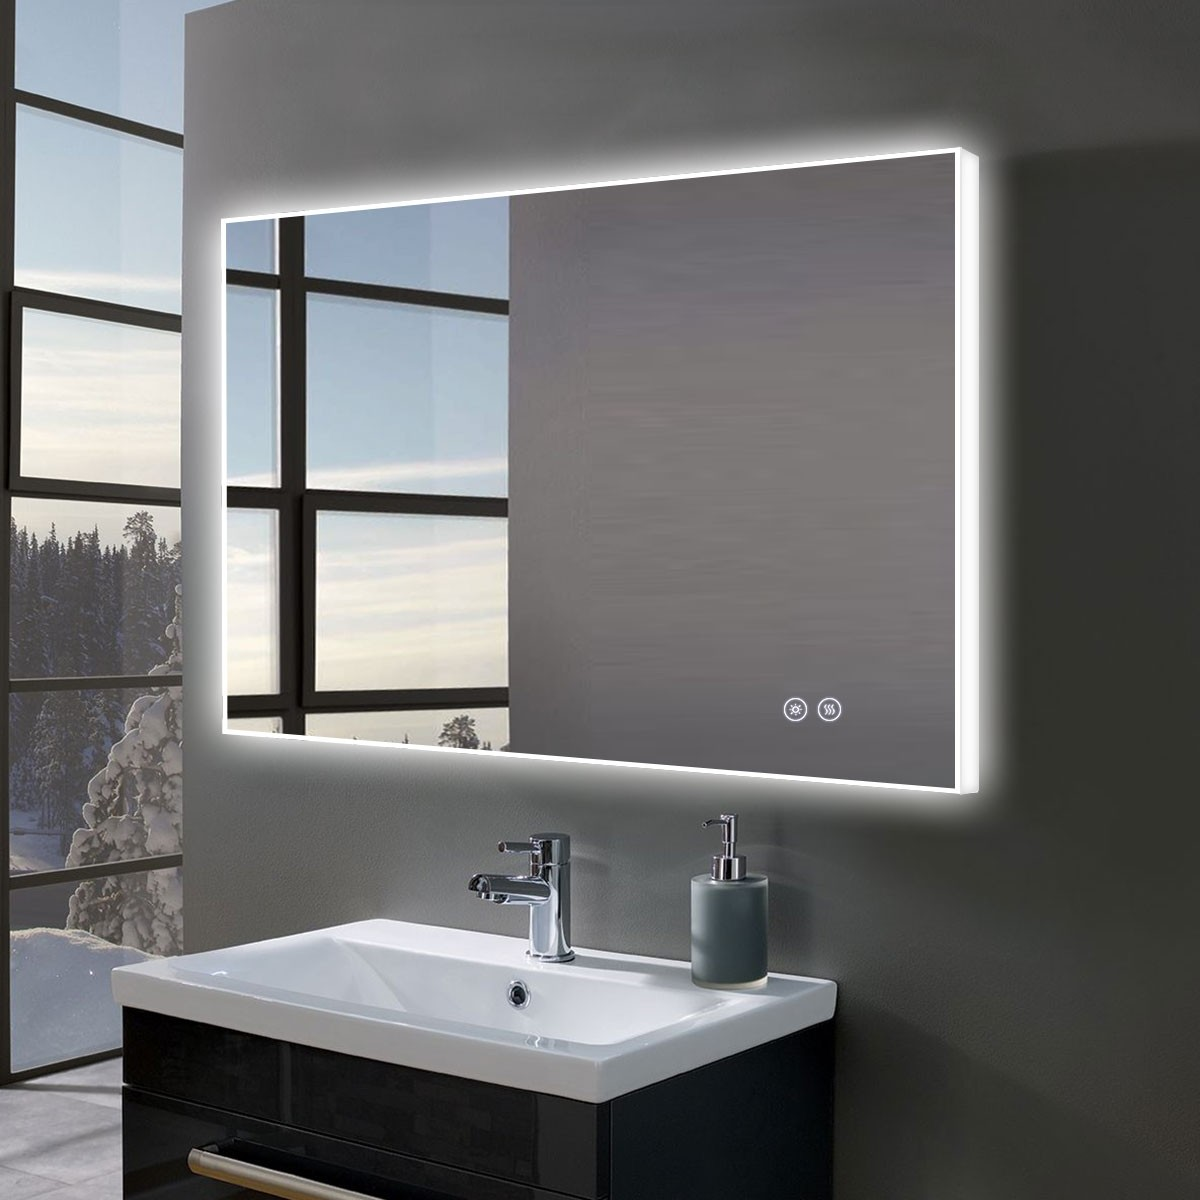 DECORAPORT 36 x 28 Inch LED Bathroom Mirror with Touch Button,Anti Fog, Dimmable, Vertical & Horizontal Mount (D413-3628)